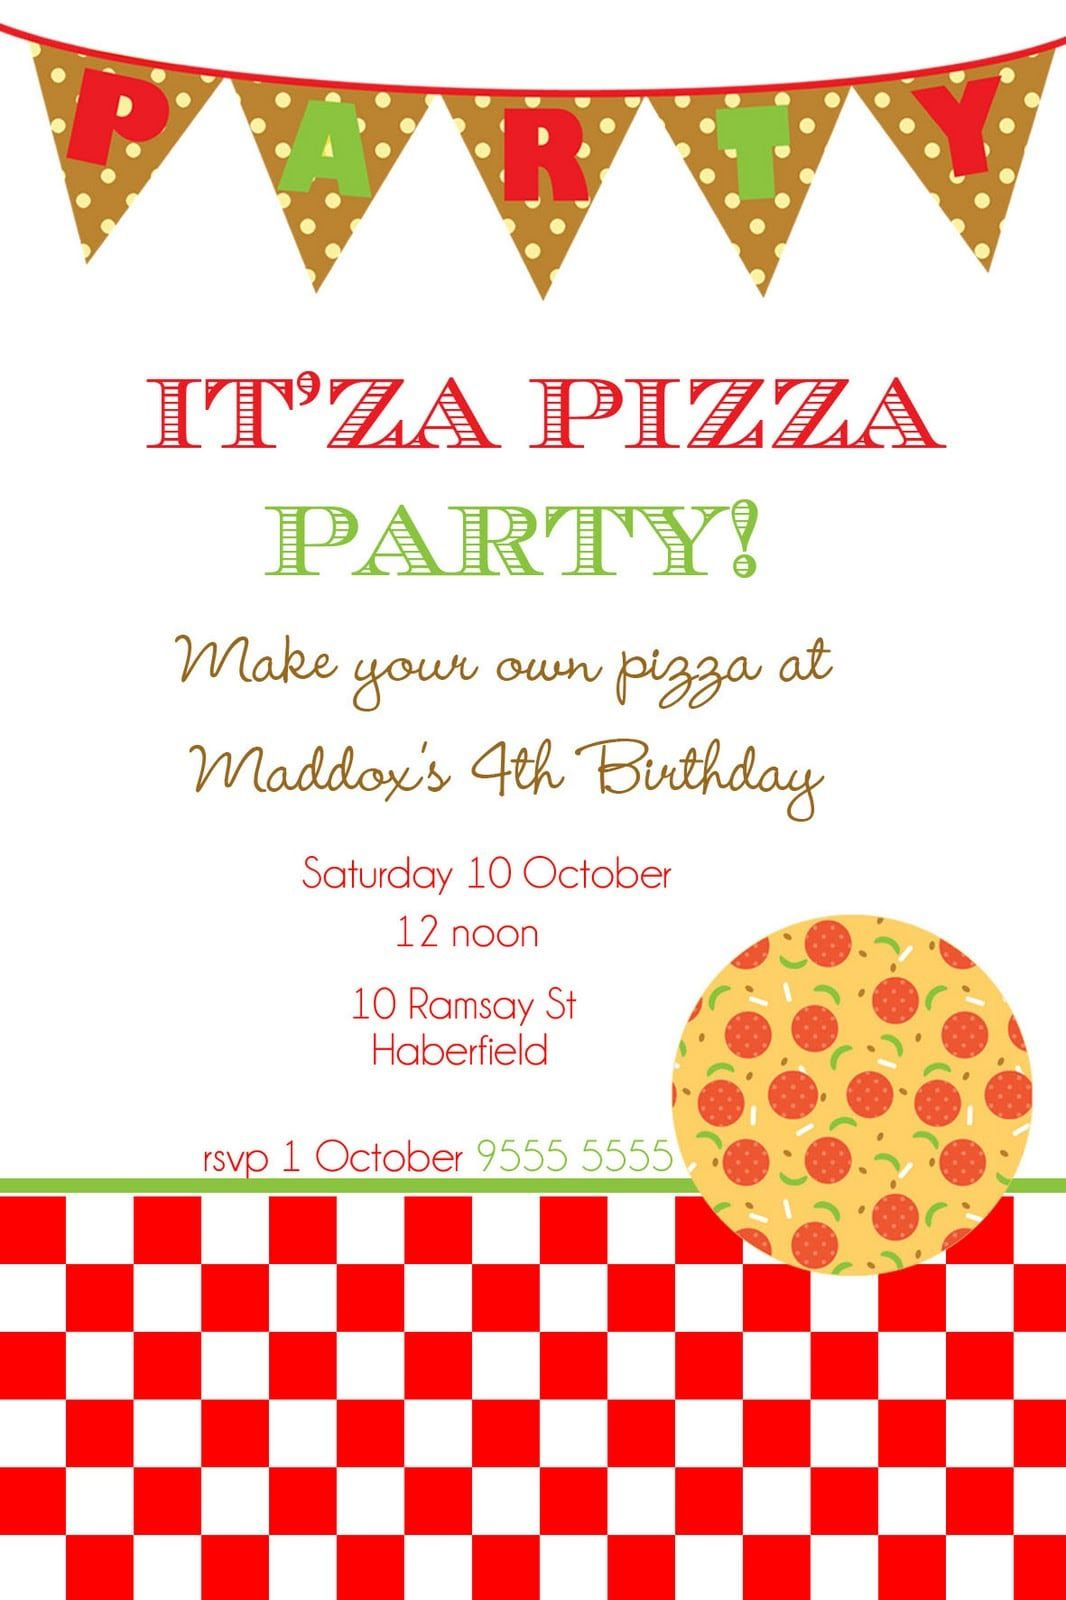 006 Awesome Pizza Party Invitation Template Free High Resolution  PrintableFull